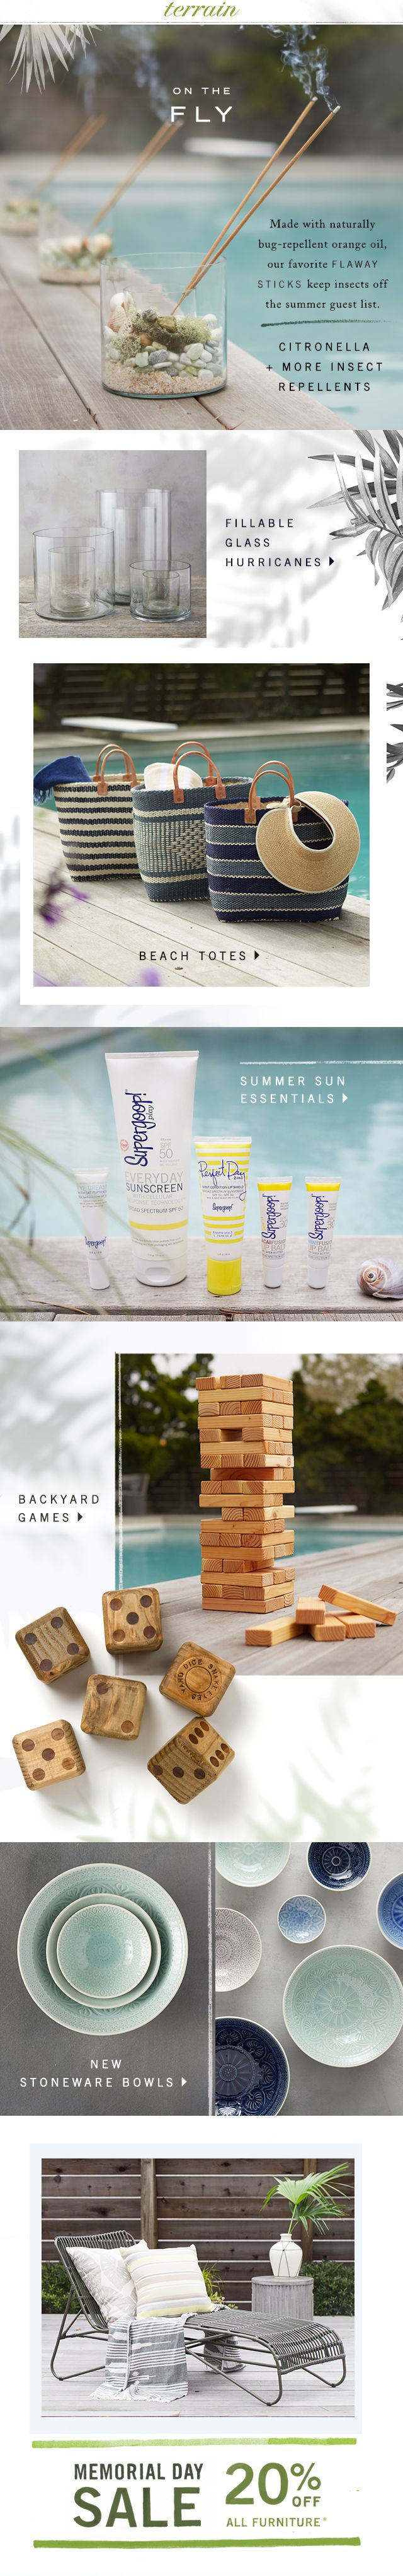 912 best graphics layouts images on pinterest editorial design